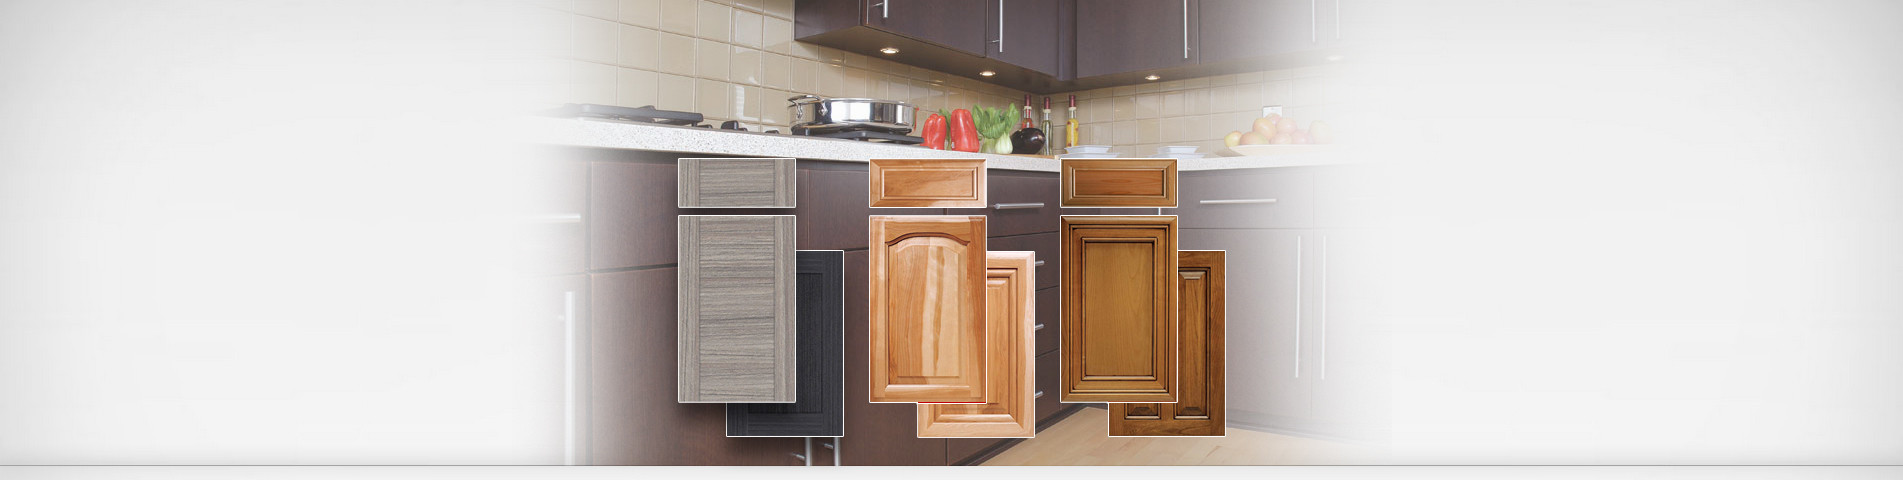 Cabinet Customized Doors and Fronts